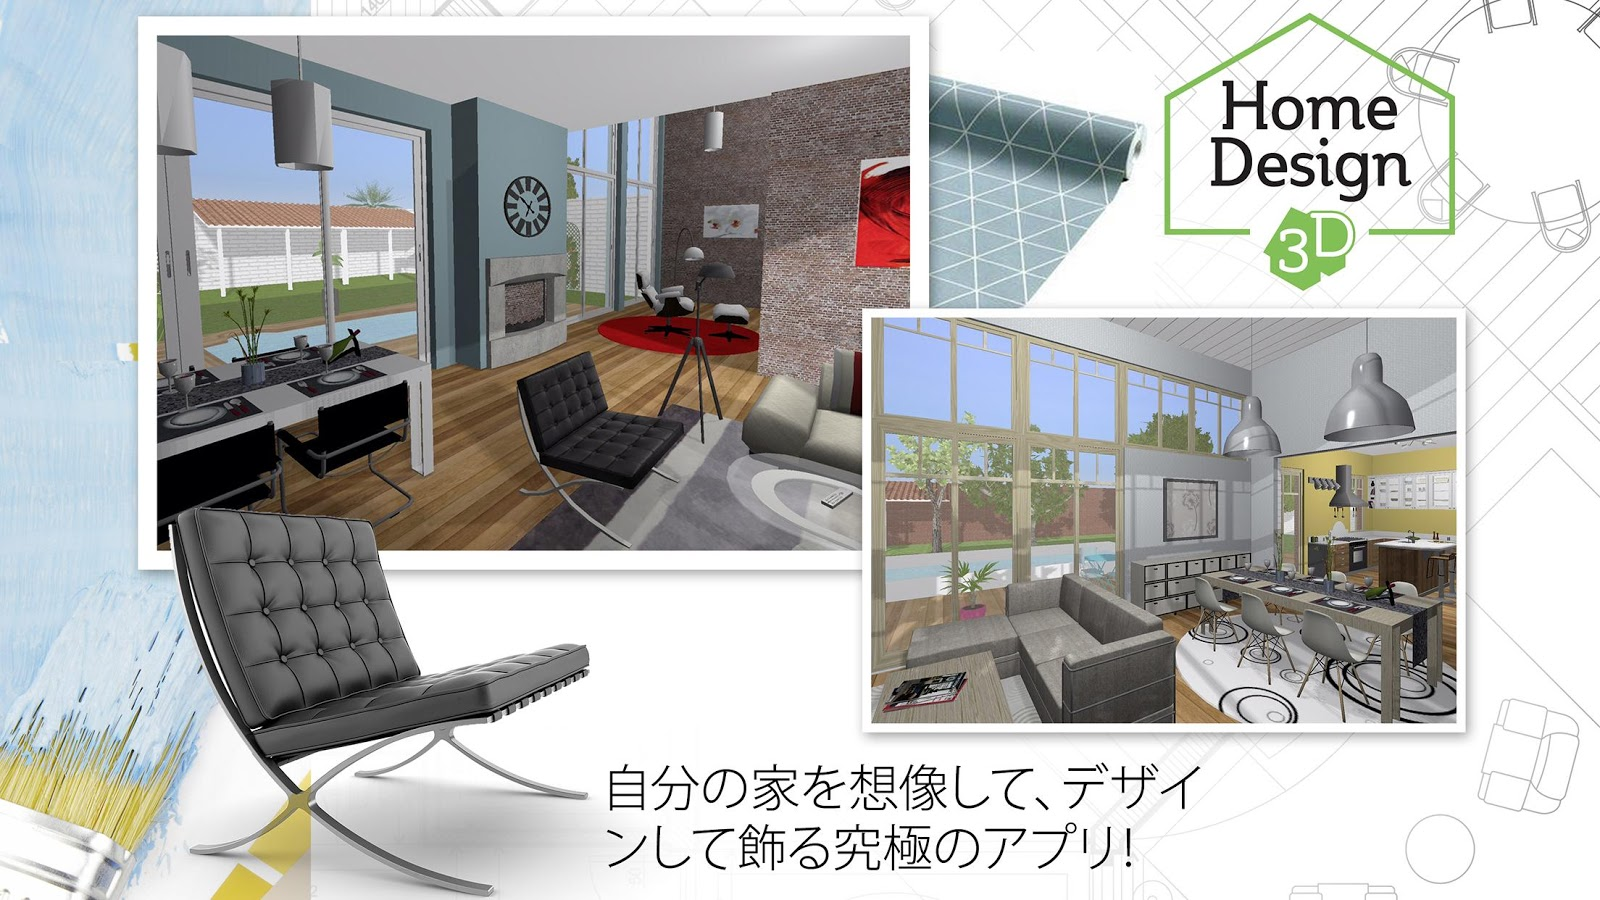 Home design 3d freemium google play android for Siti web di costruzione domestica